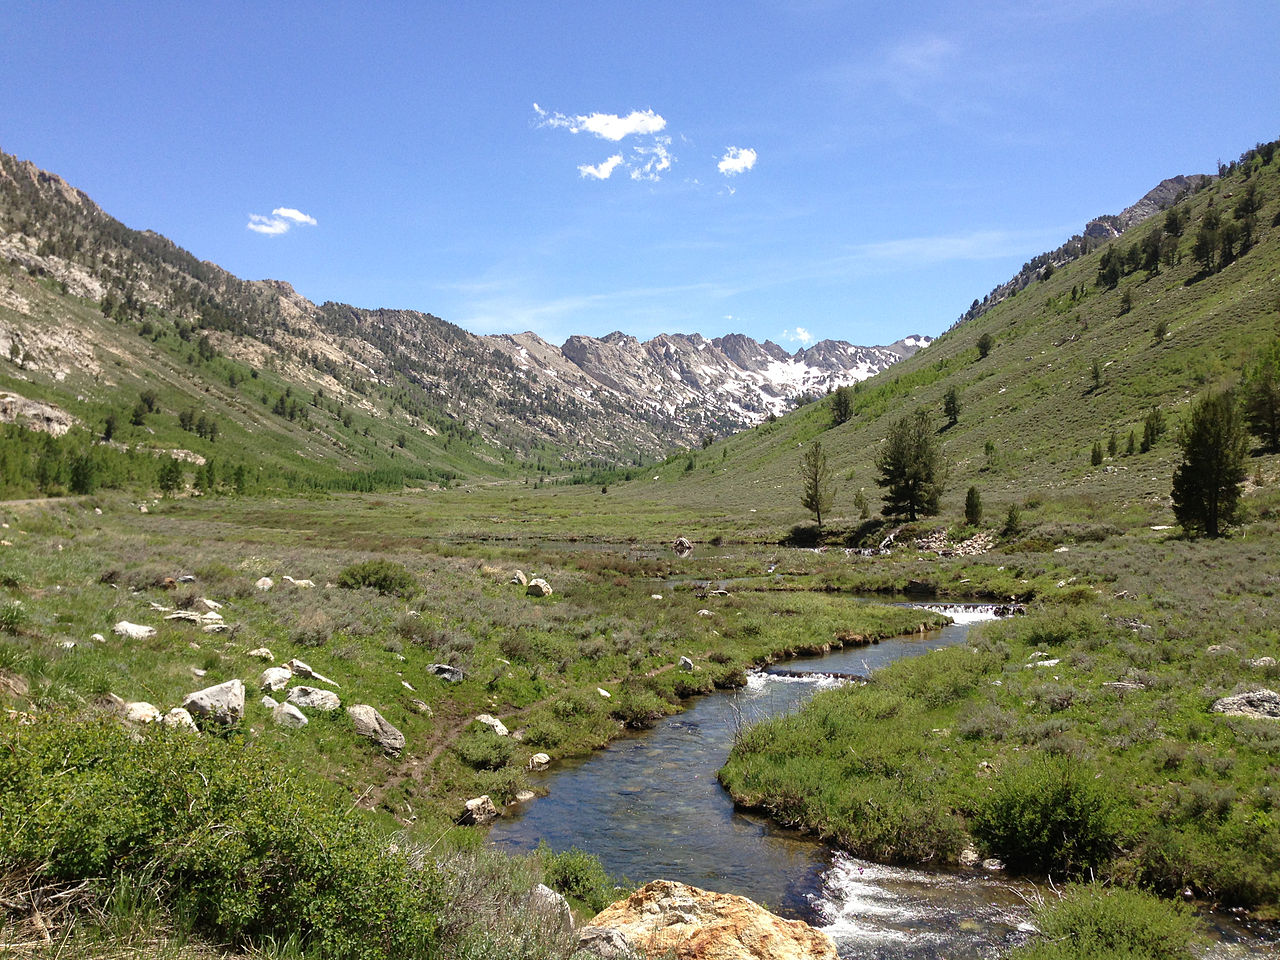 Must Visit Place In Nevada-Lamoille Canyon